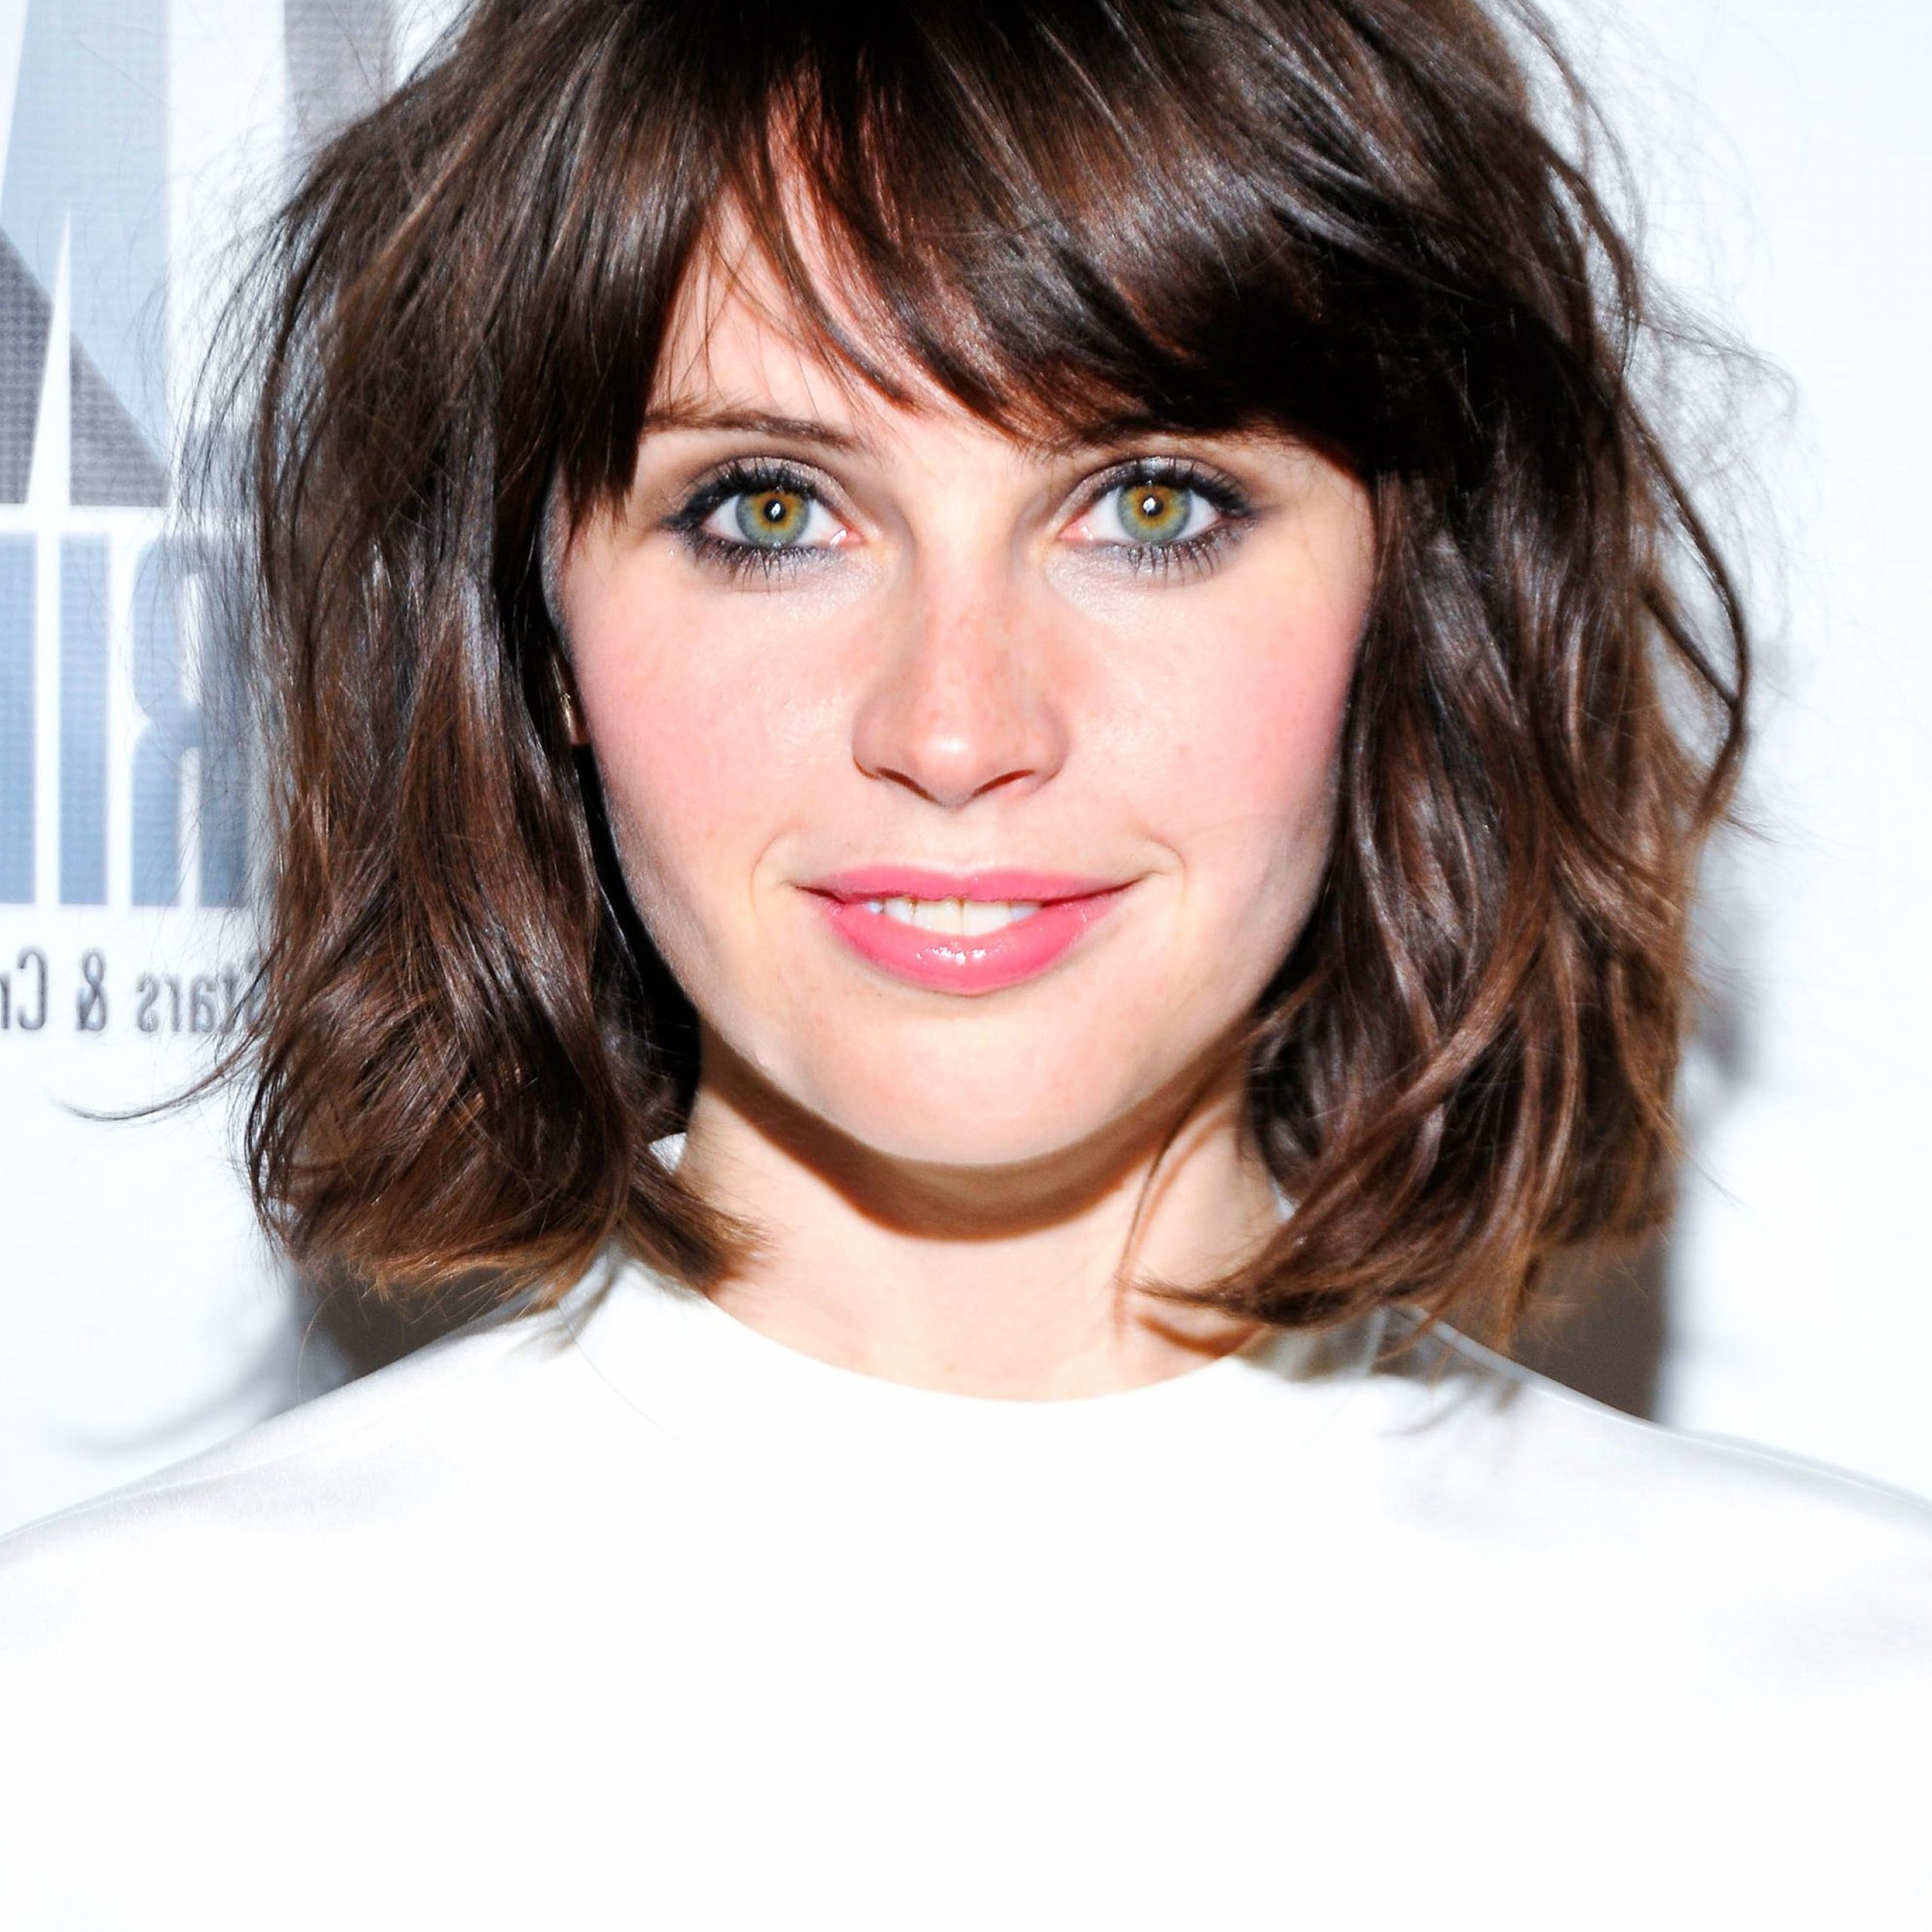 Pin On Hair Styles Intended For Curly Messy Bob Hairstyles With Side Bangs (View 12 of 20)